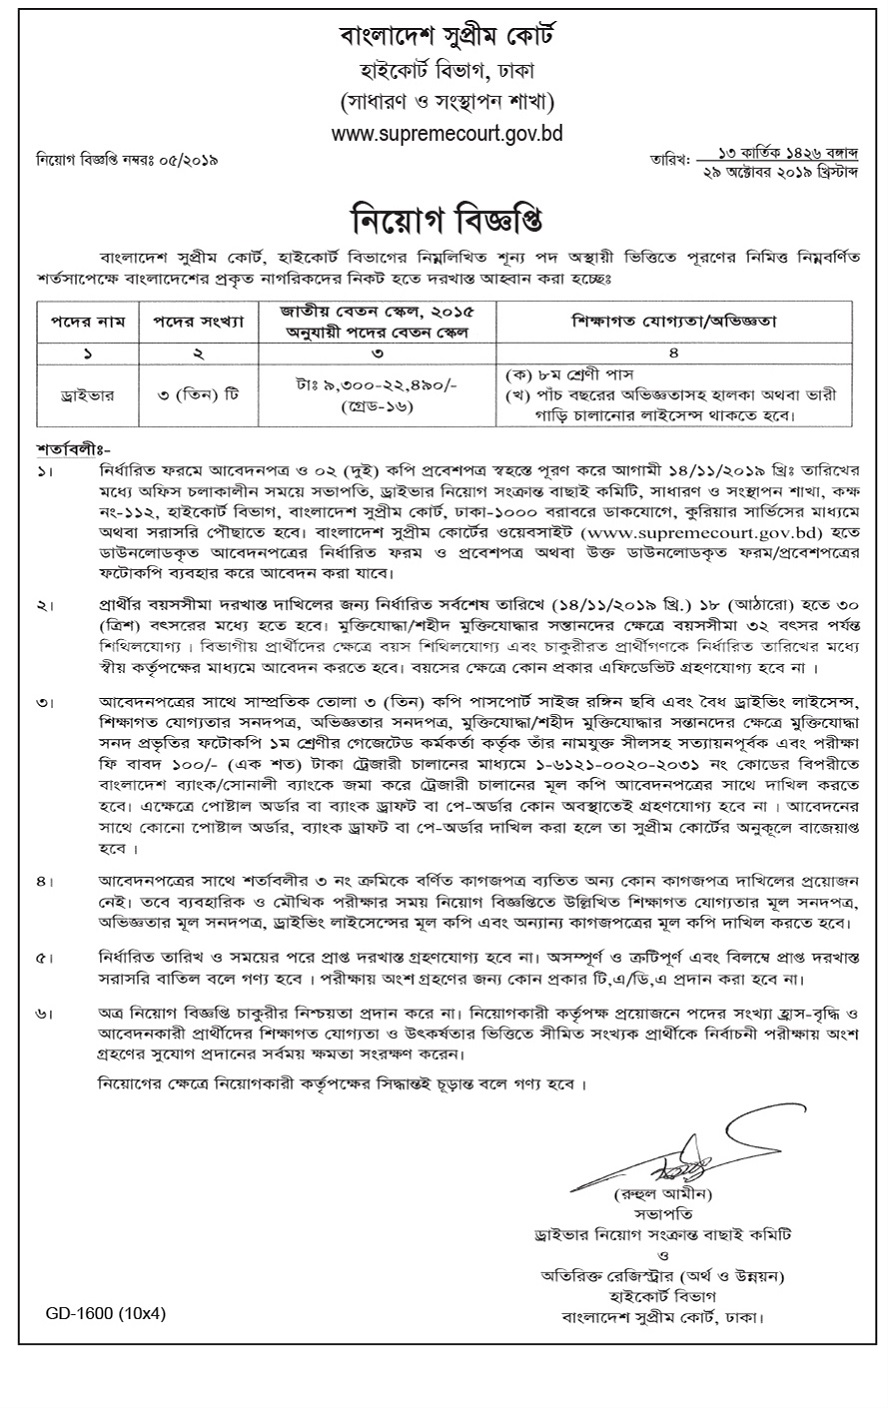 Bangladesh Supreme Court Job Circular 2019